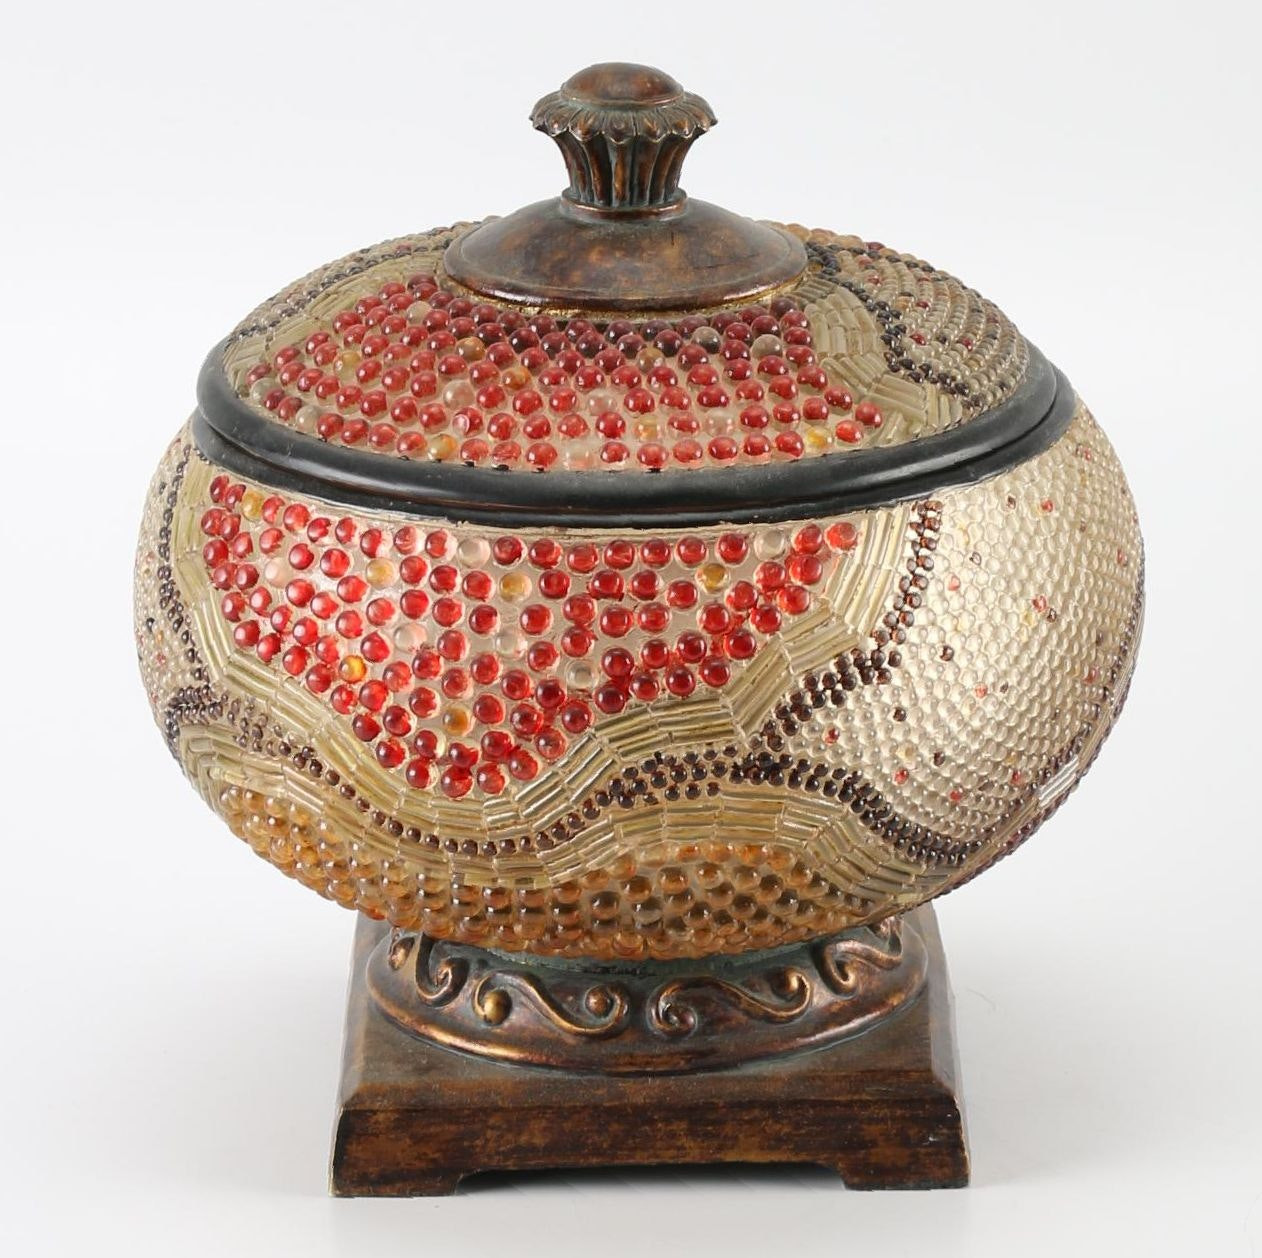 Round Beaded Urn with Wooden Base